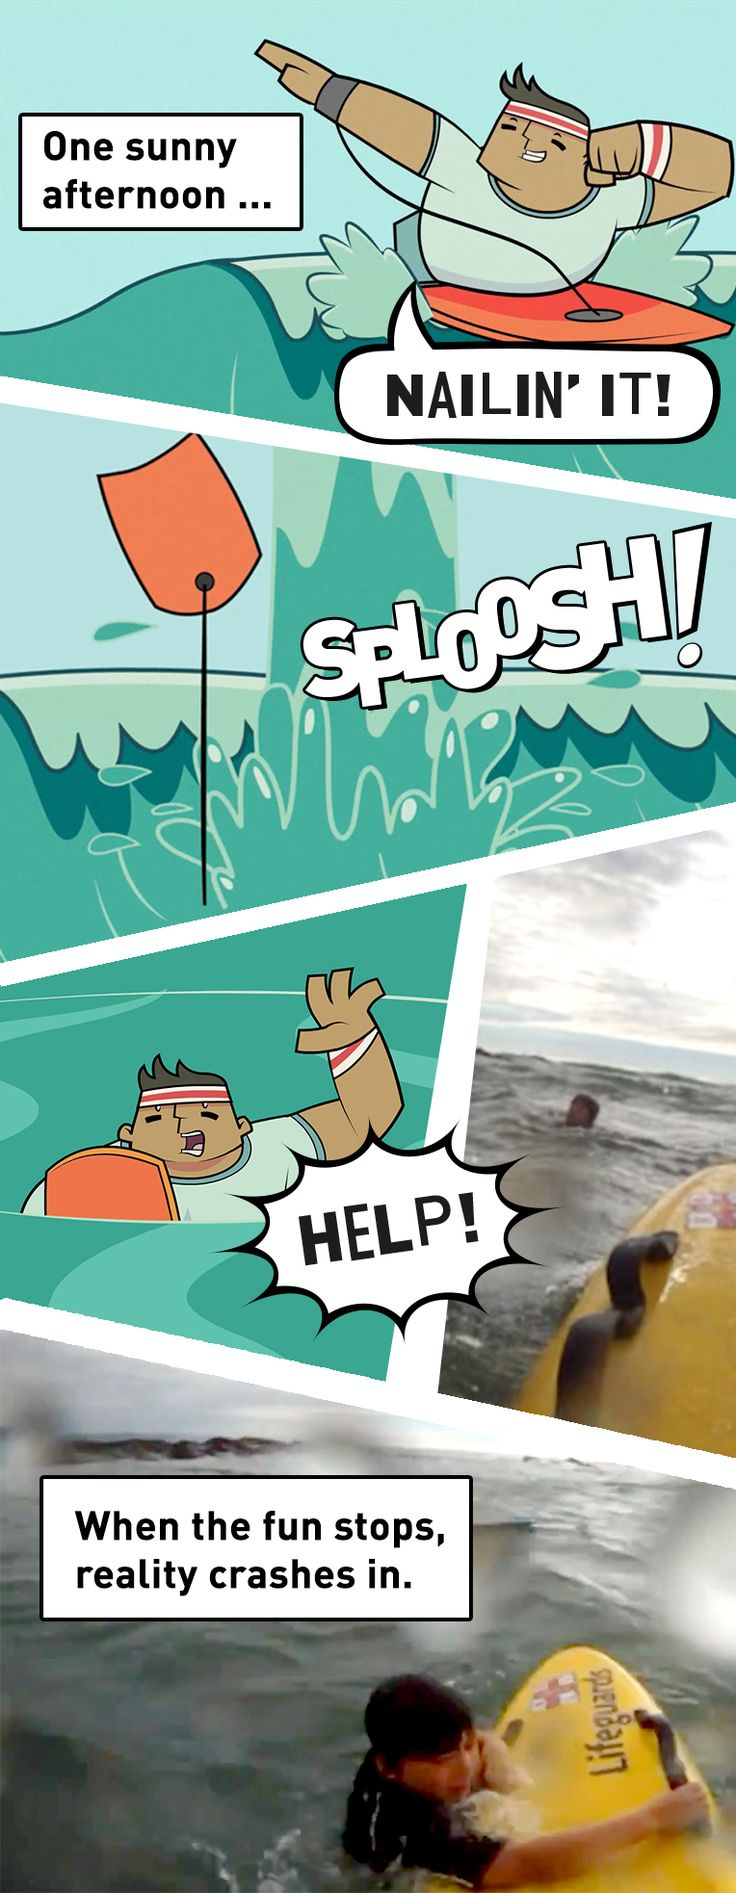 Would your kids know what to do if they were dragged out to sea? Keep your family safe with our animated safety guide download today at BeachSmart.org.uk